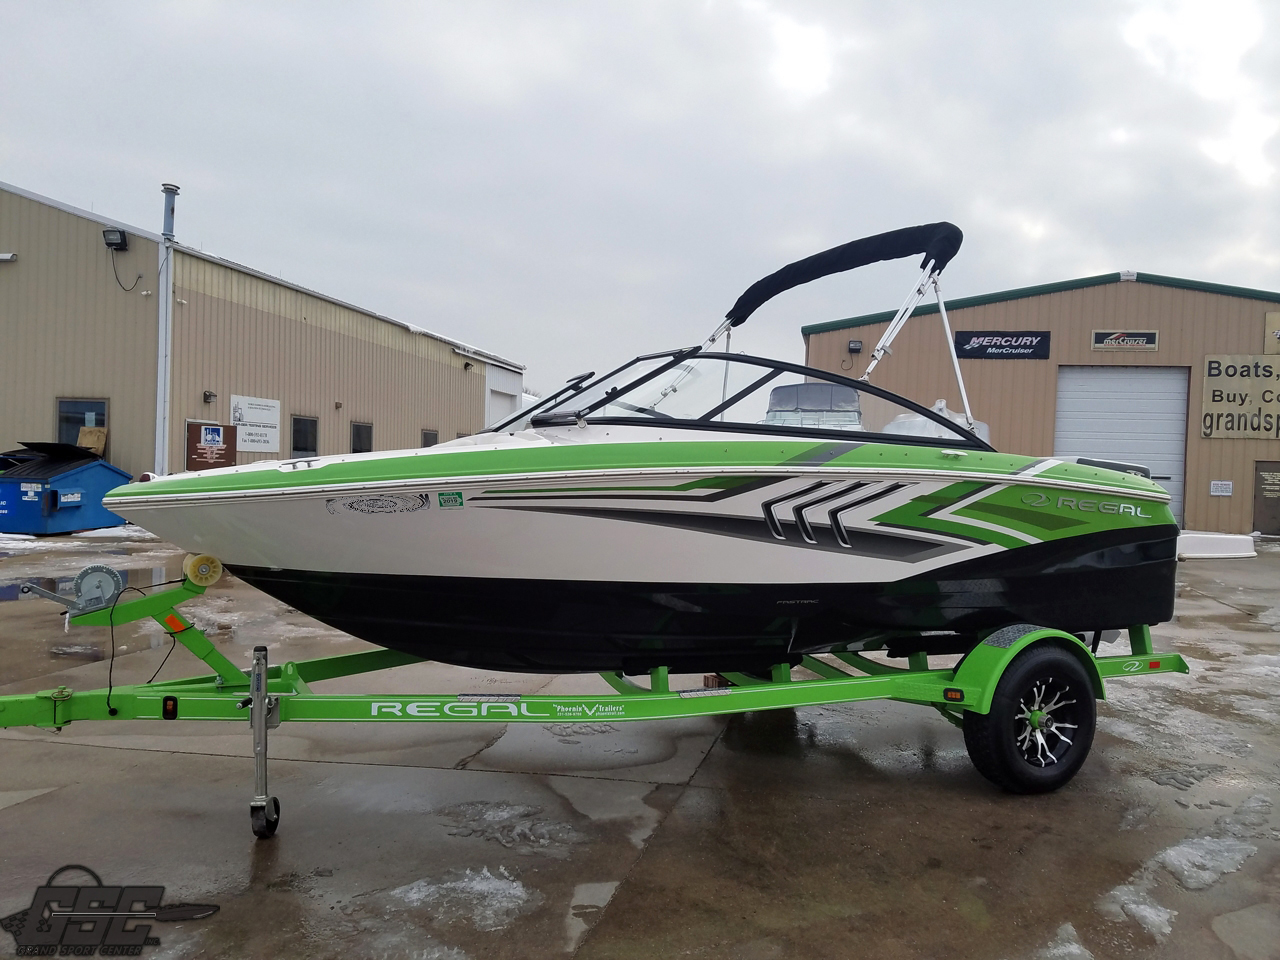 2015 Regal 1900 ESX Bowrider  - SOLD in 72 hrs!